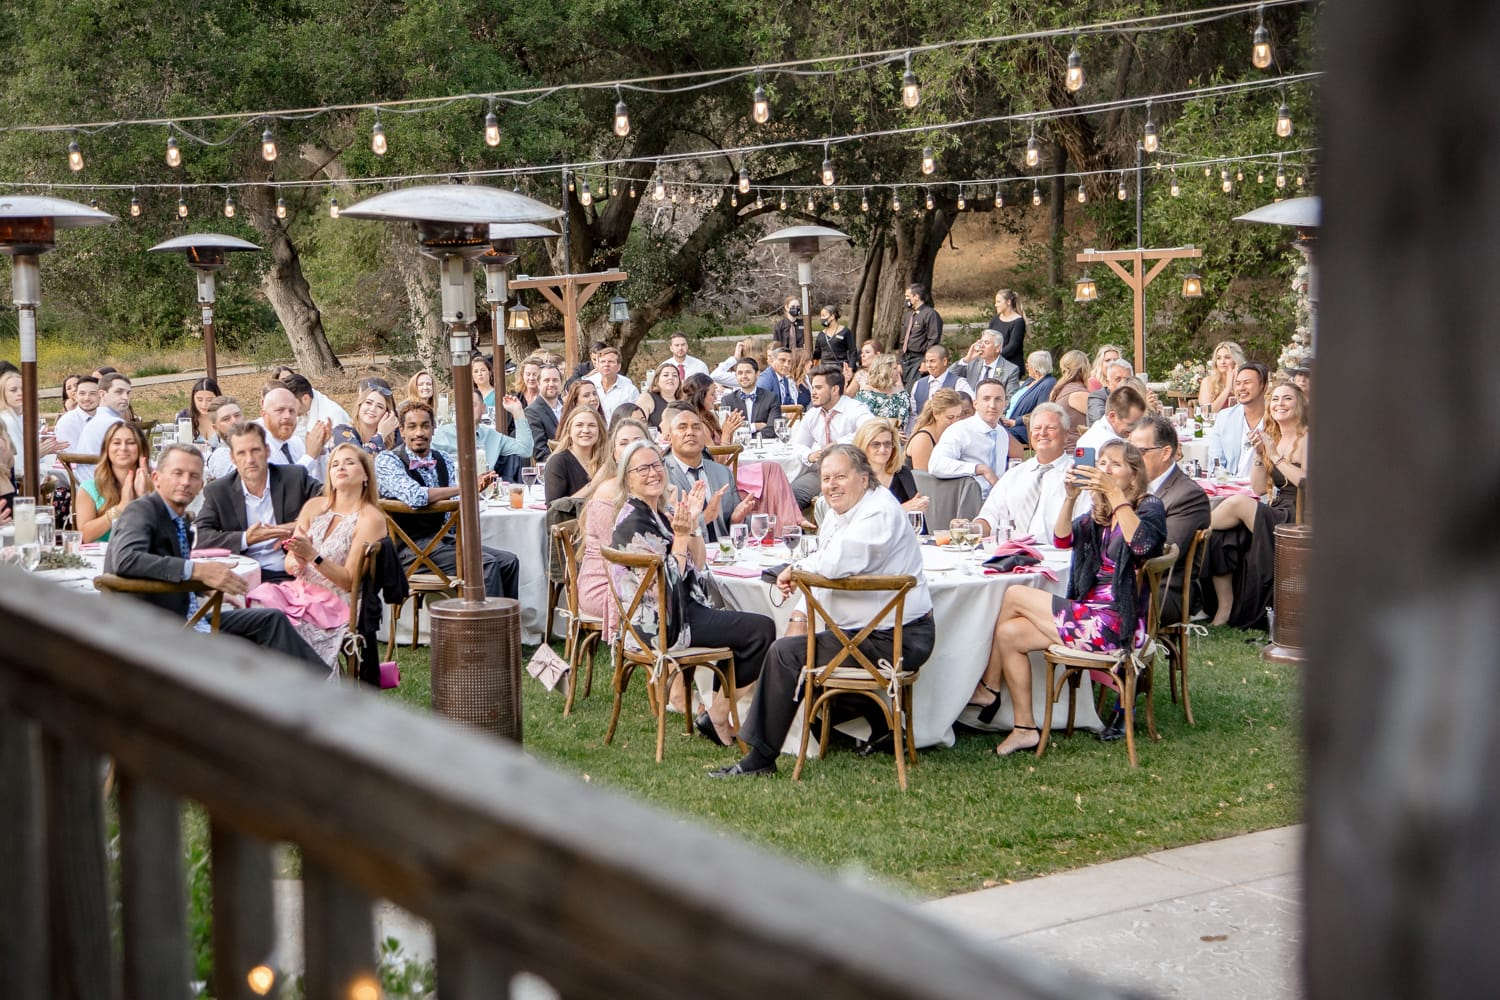 Guests cheering at The Stone House wedding venue reception